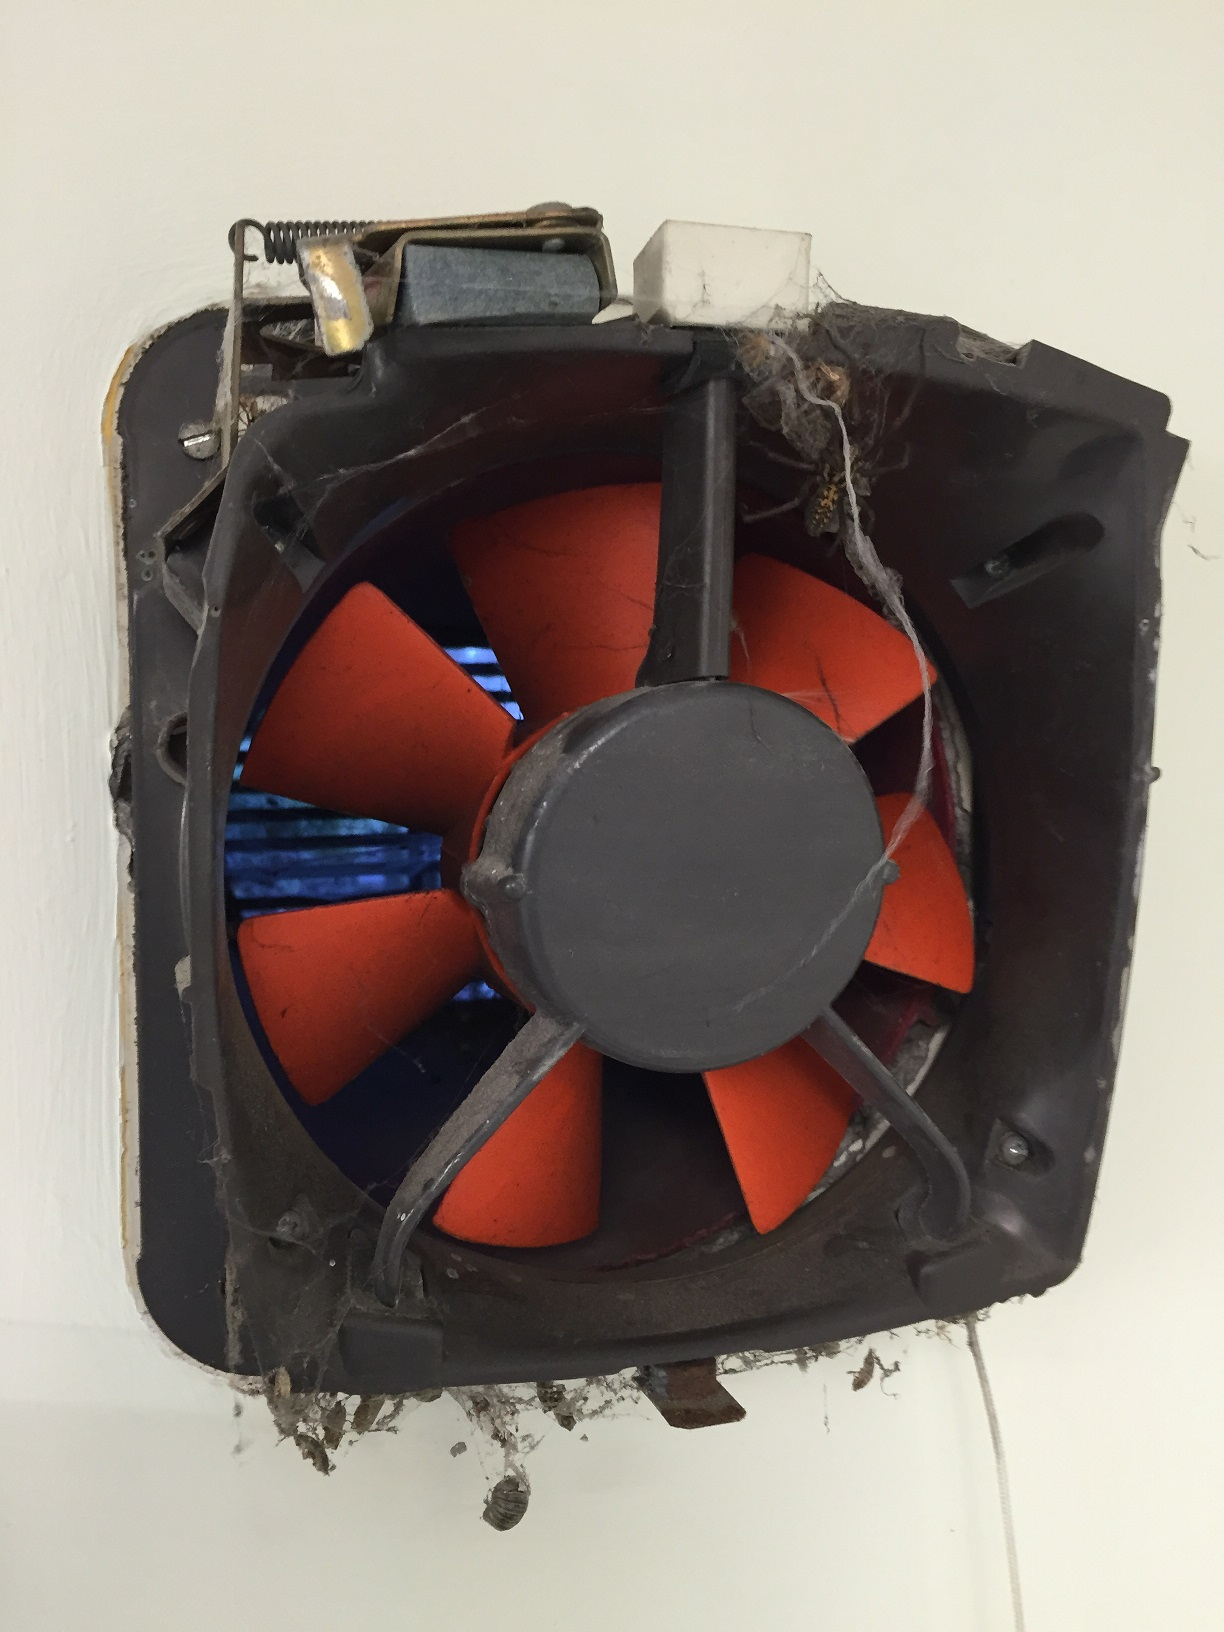 Dirty Extractor Fan